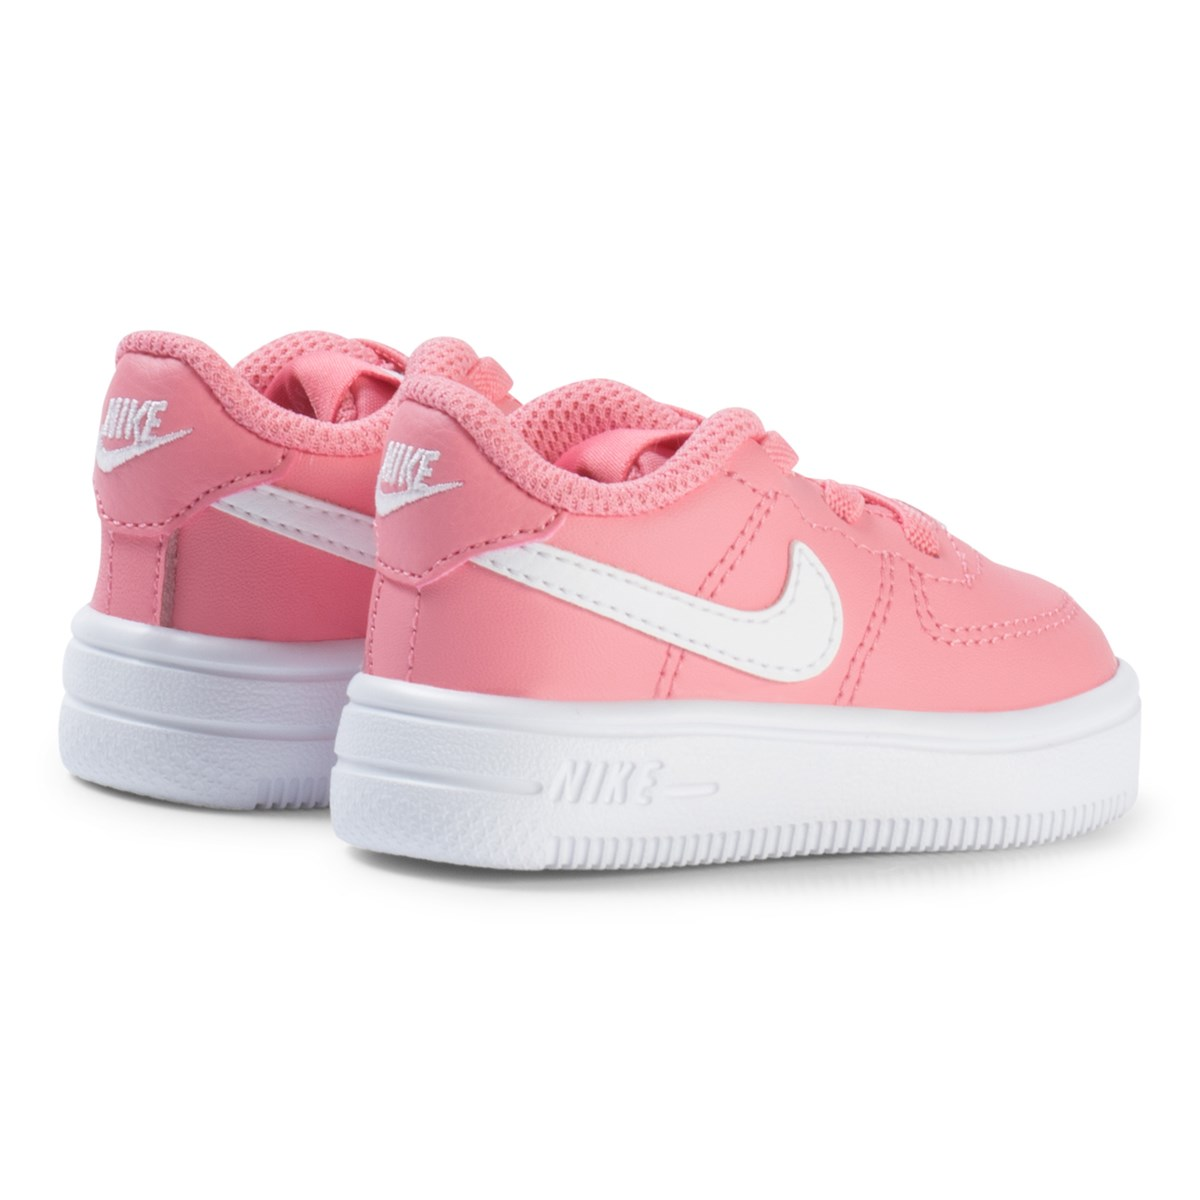 Newborn Car Seat Accessories Nike Air Force 1 Infant Sneakers Pink Babyshop